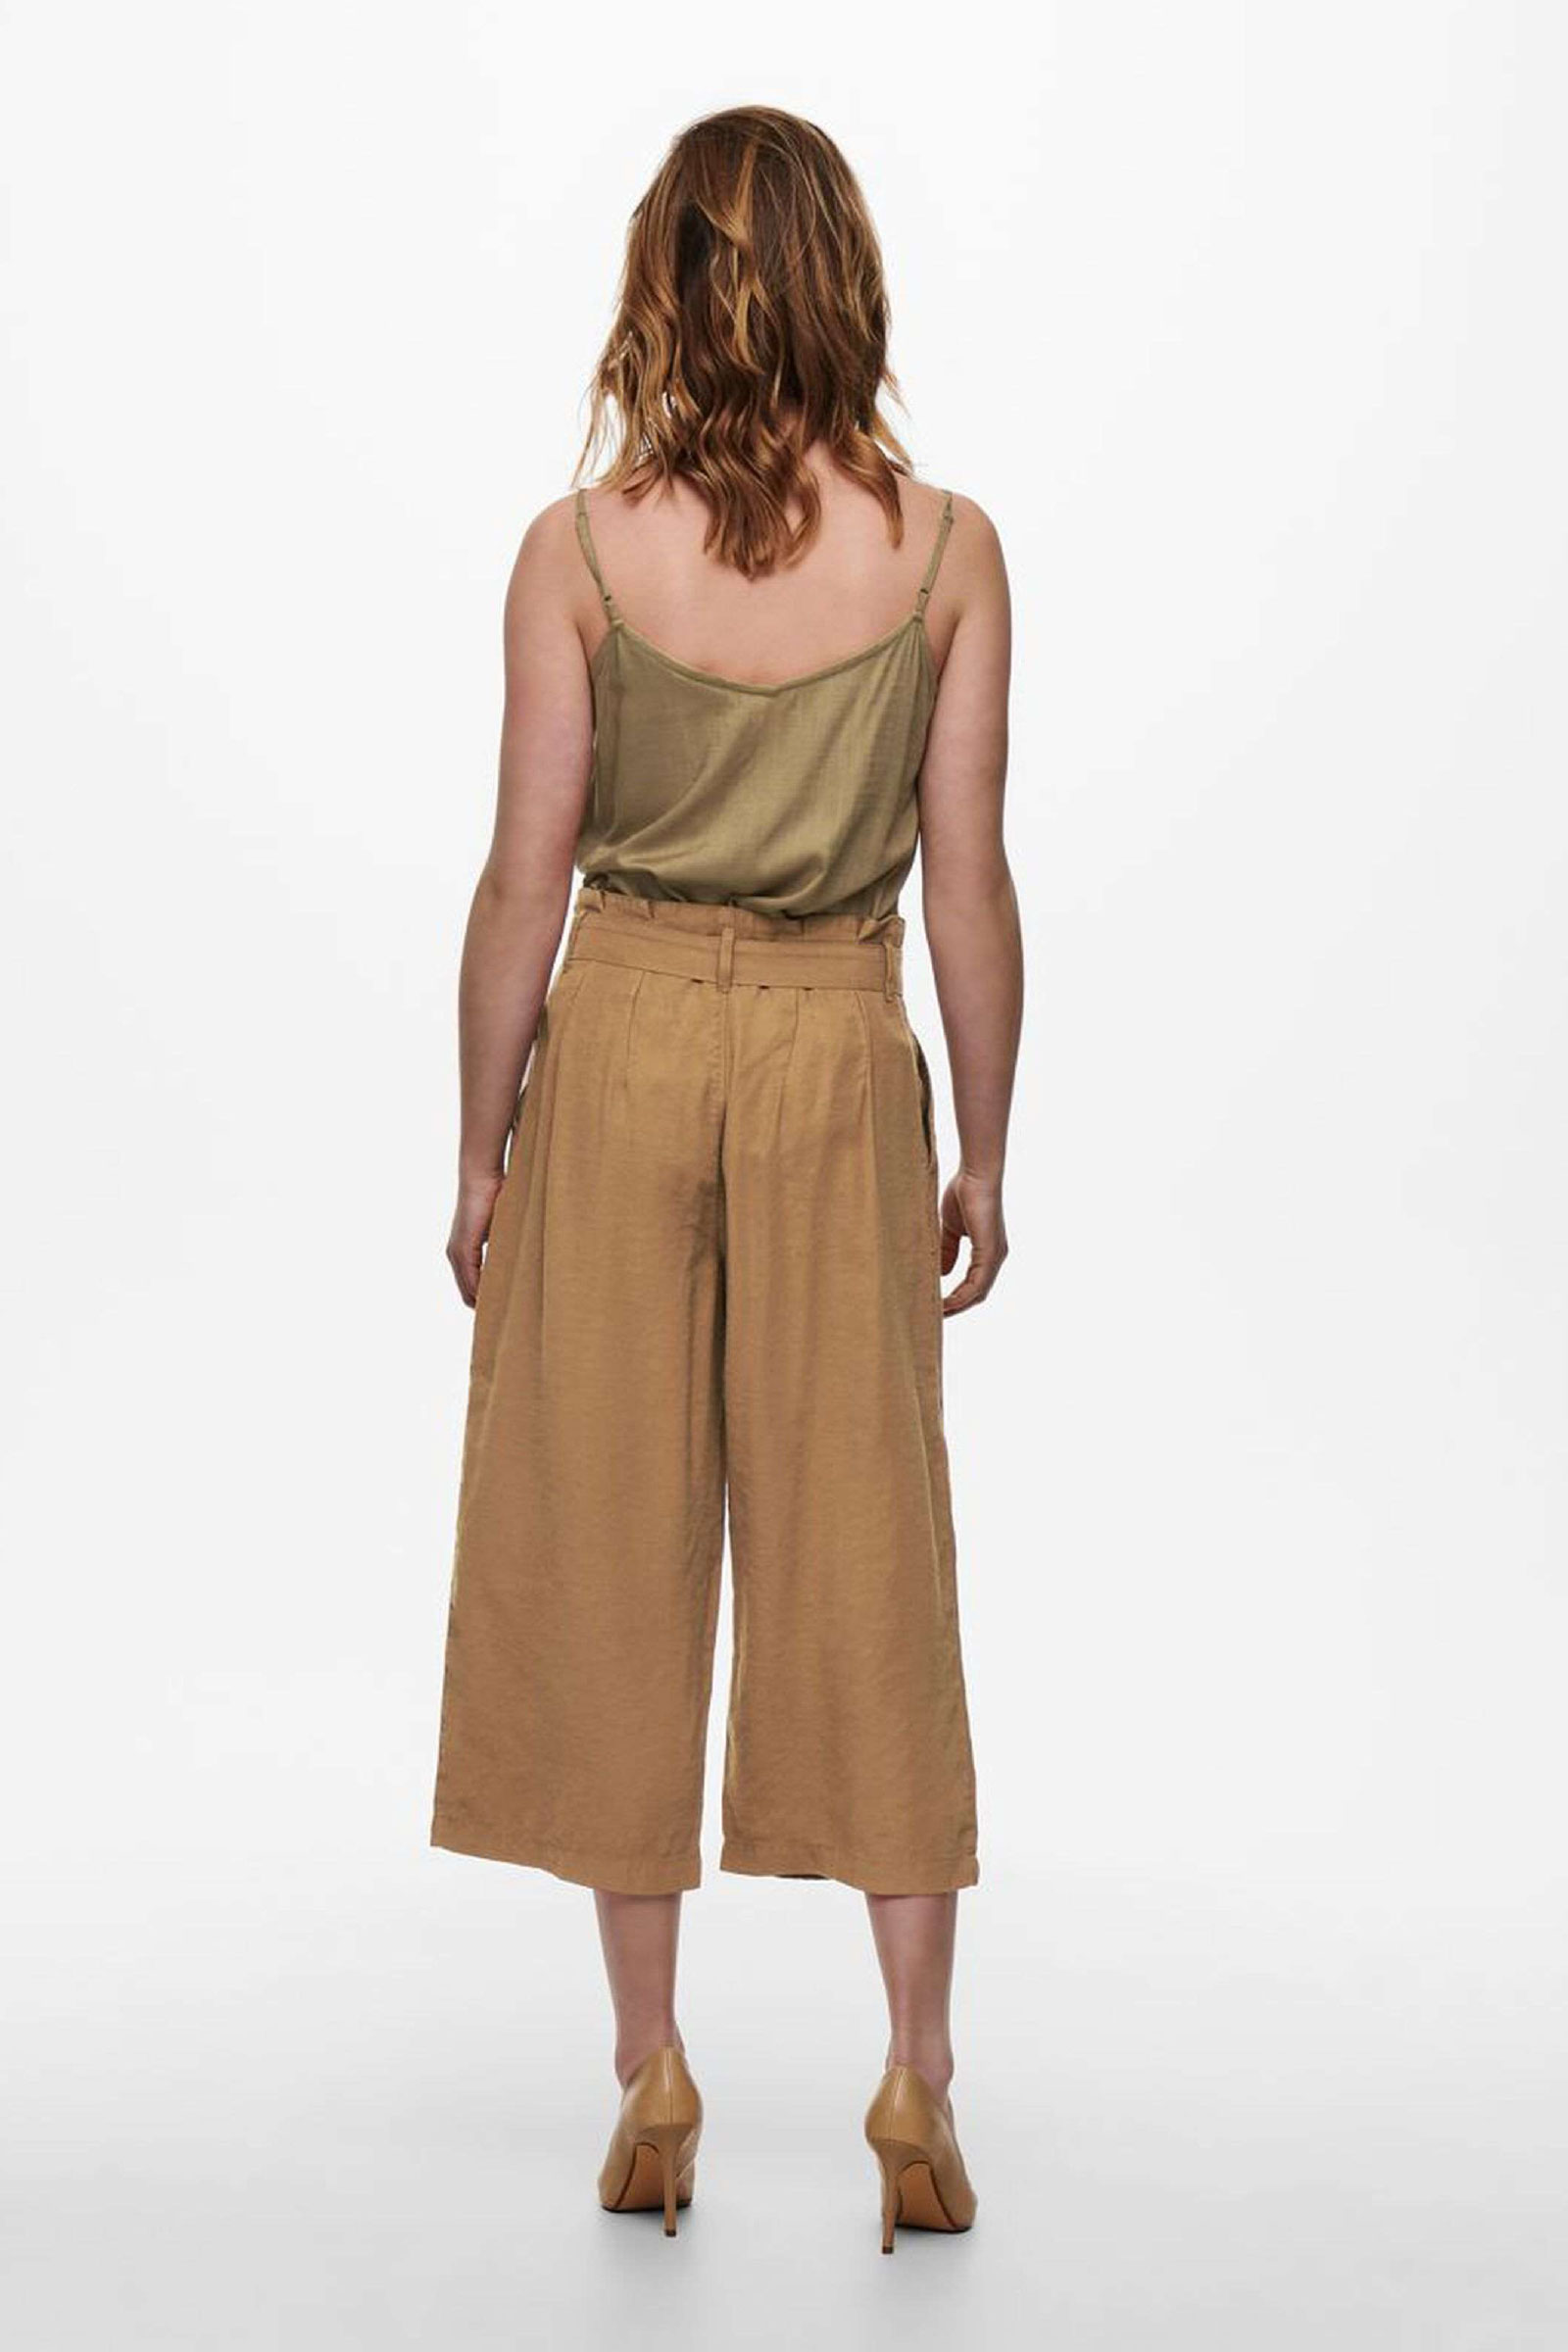 ONLY pantalone Donna Toasted Coconut ONLY | Trousers | 15198918Toasted Coconut